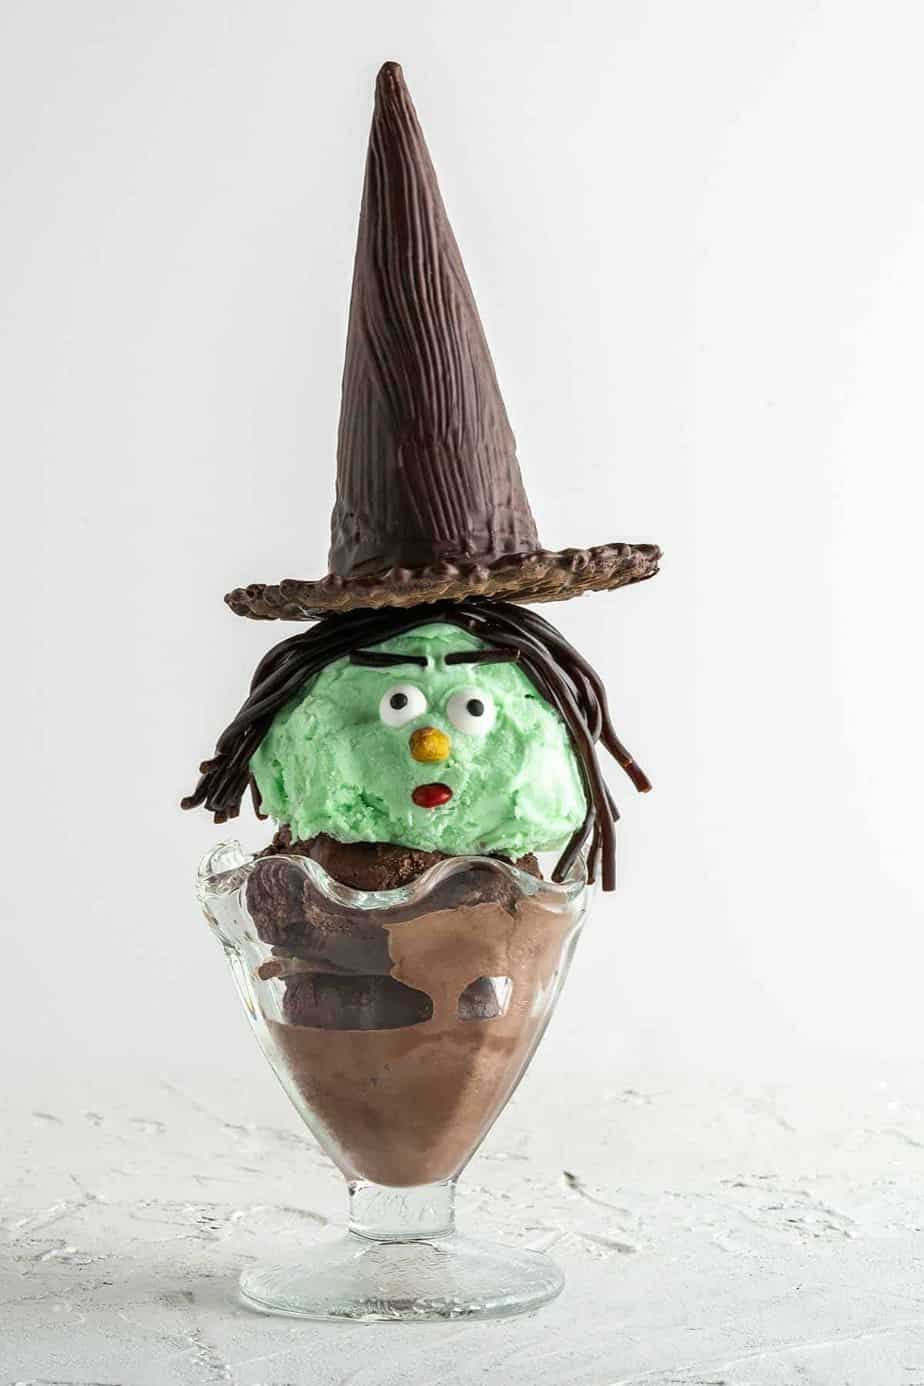 Ice cream sundae decorated like a witch with a green face from the side